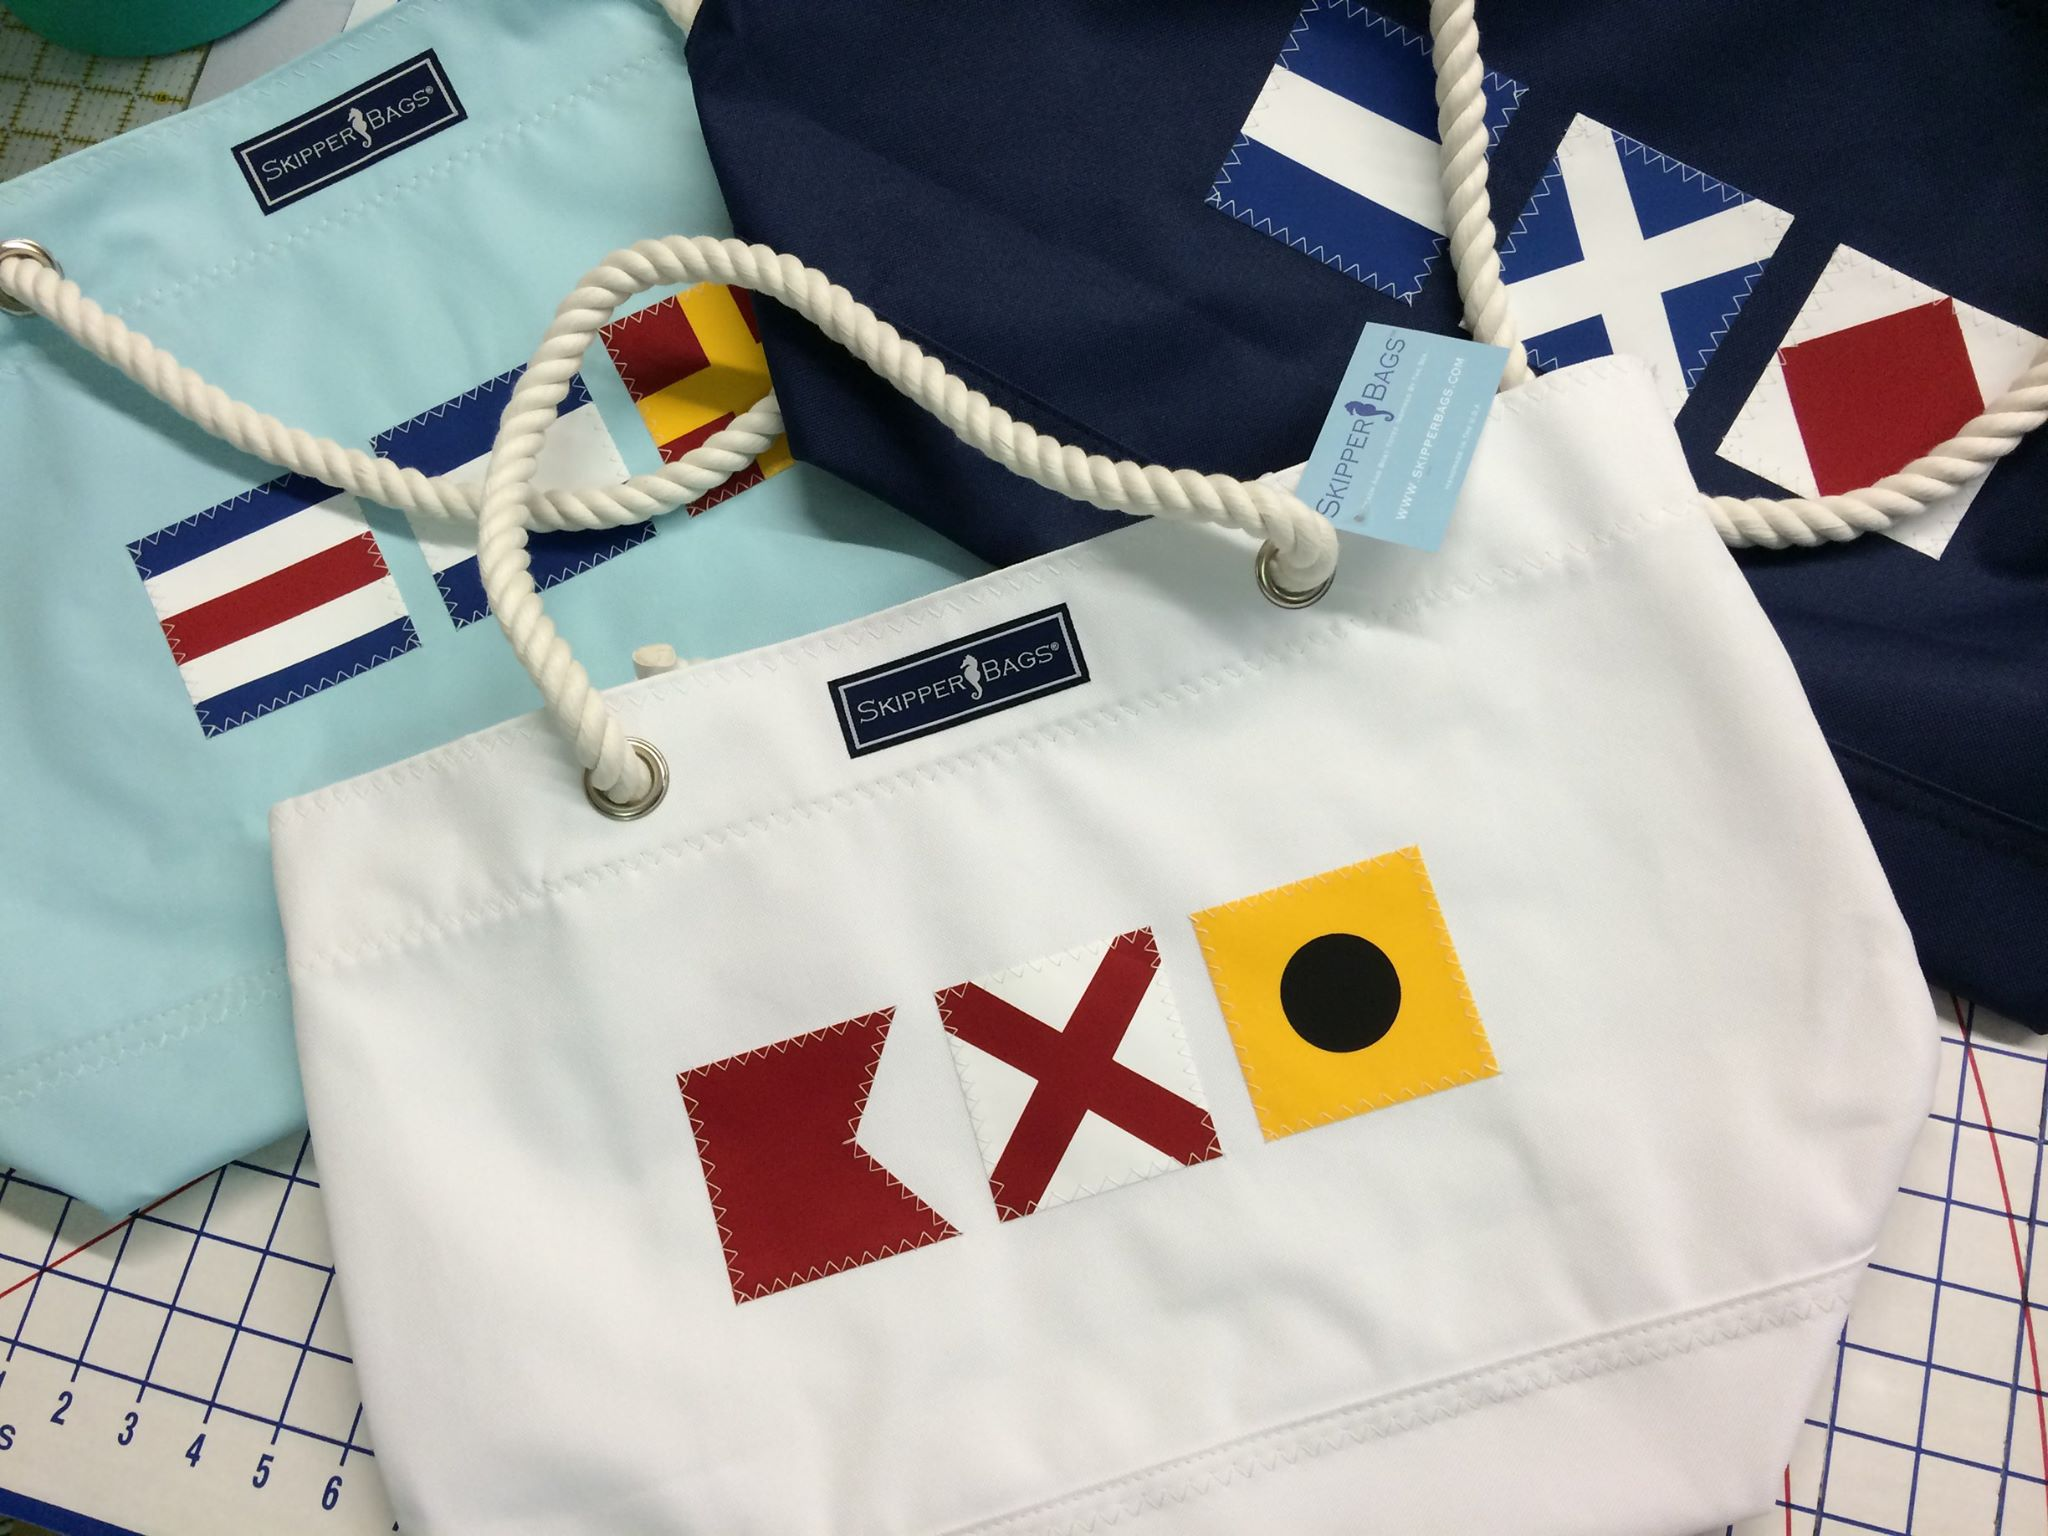 Skipper Bags, crafts everything nautical from Easton, MD. Photo via Skipper Bags.